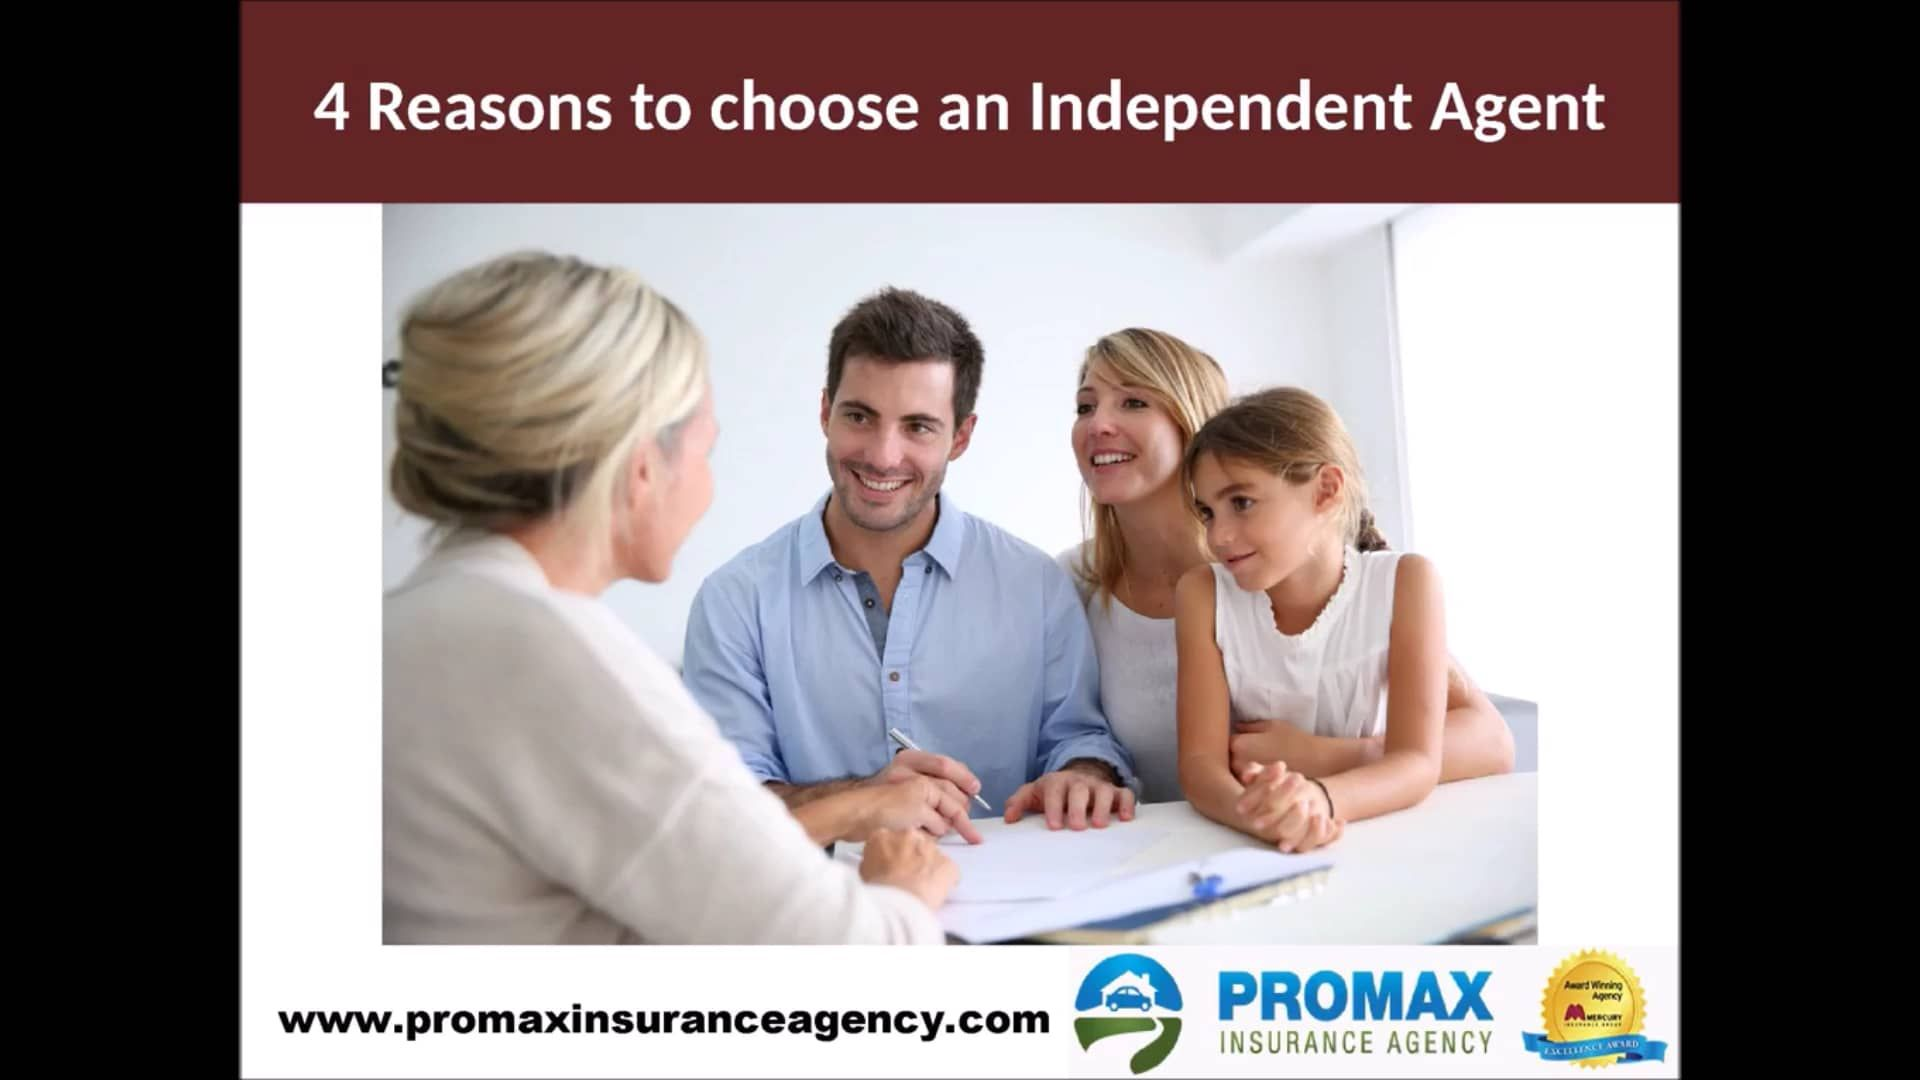 Insurance Agency Services Insurance agency, Independent